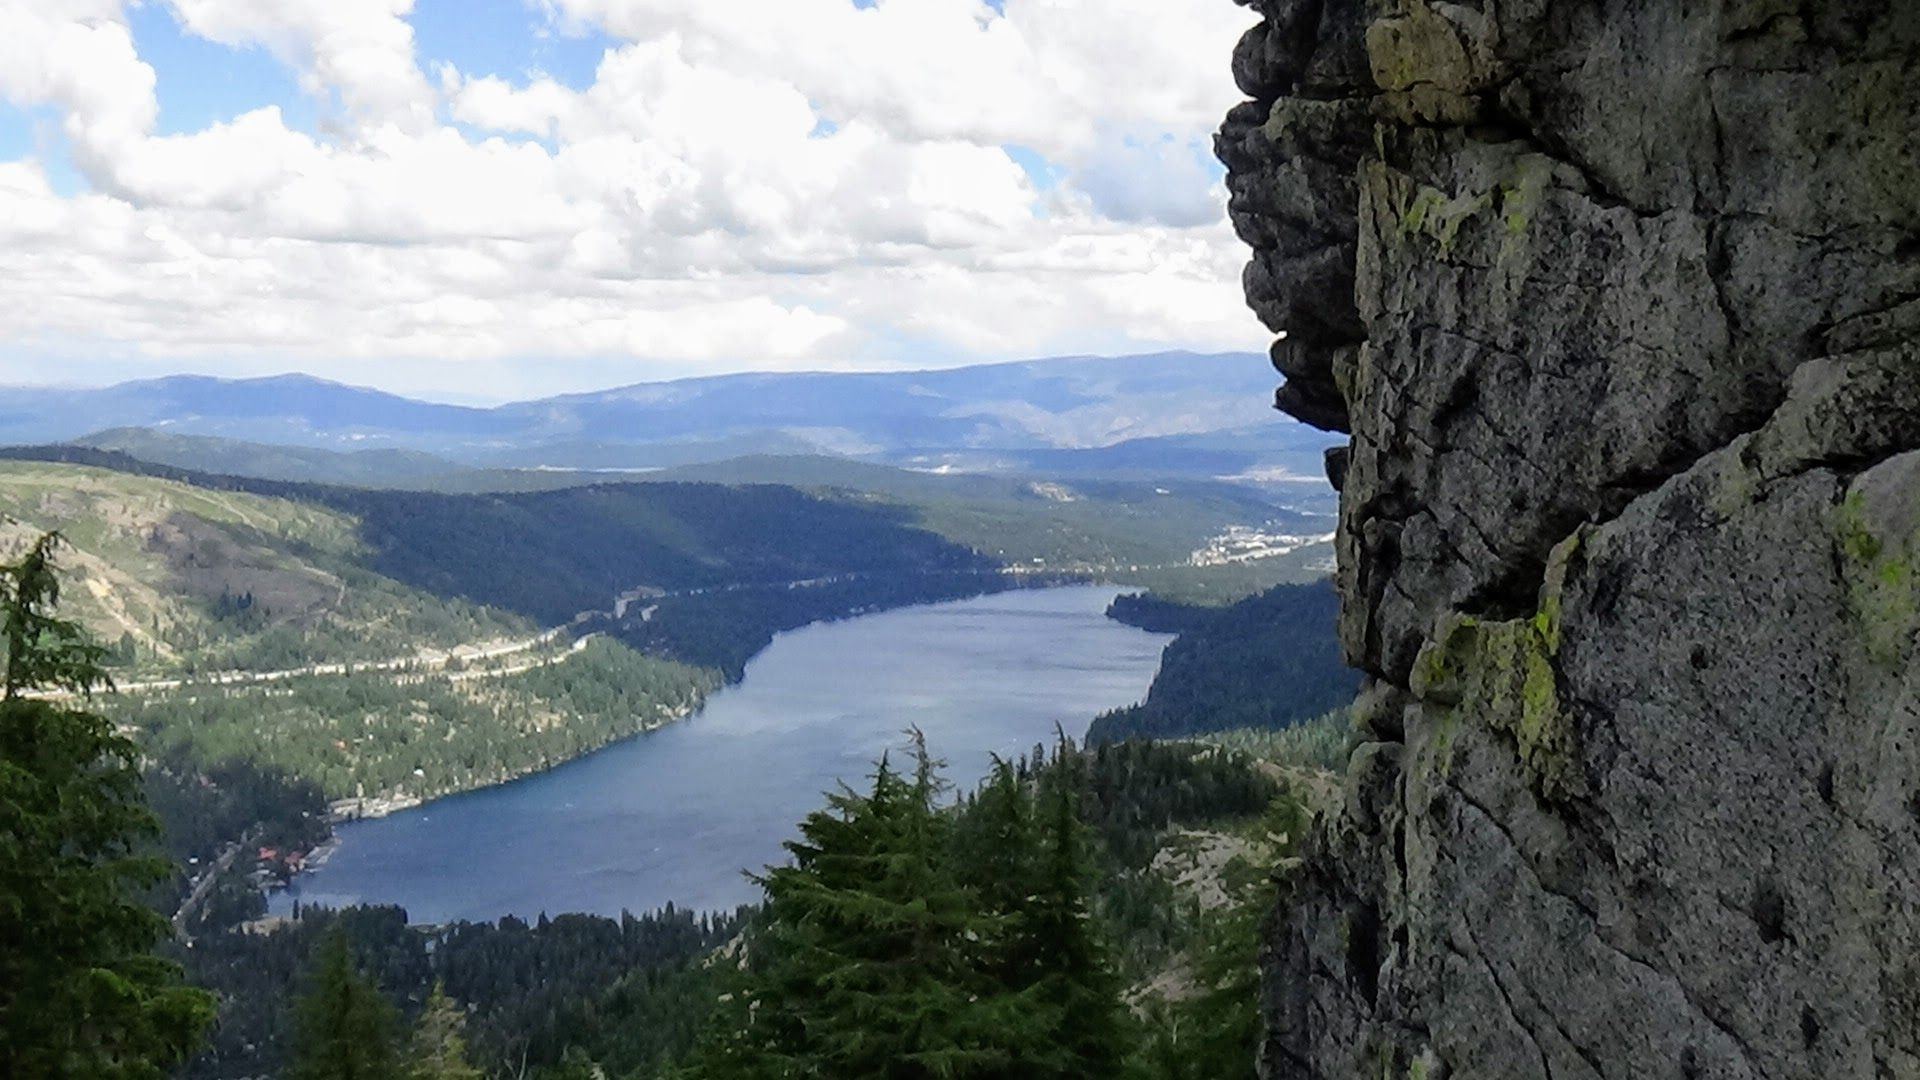 This Is The View From Mt Donner Looking Down Upon Donner Lake This Has Been A Well Known Spot To Take In The View Since Covere Donner Lake Sierra Nevada Lake